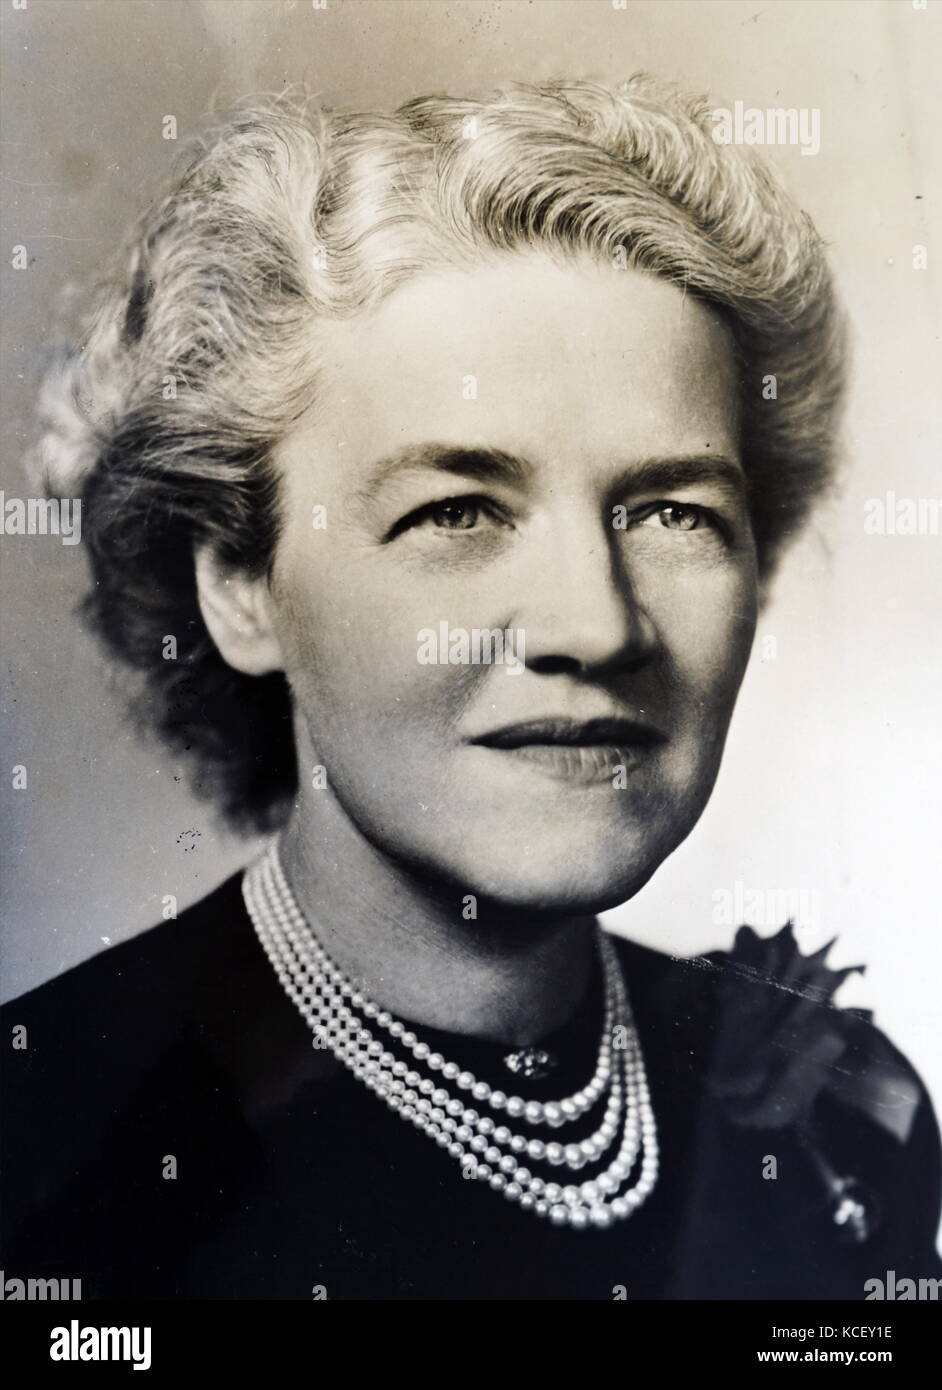 Photograph of Margaret Chase Smith (1897-1995) a former United States politician, member of the Republican Party - Stock Image